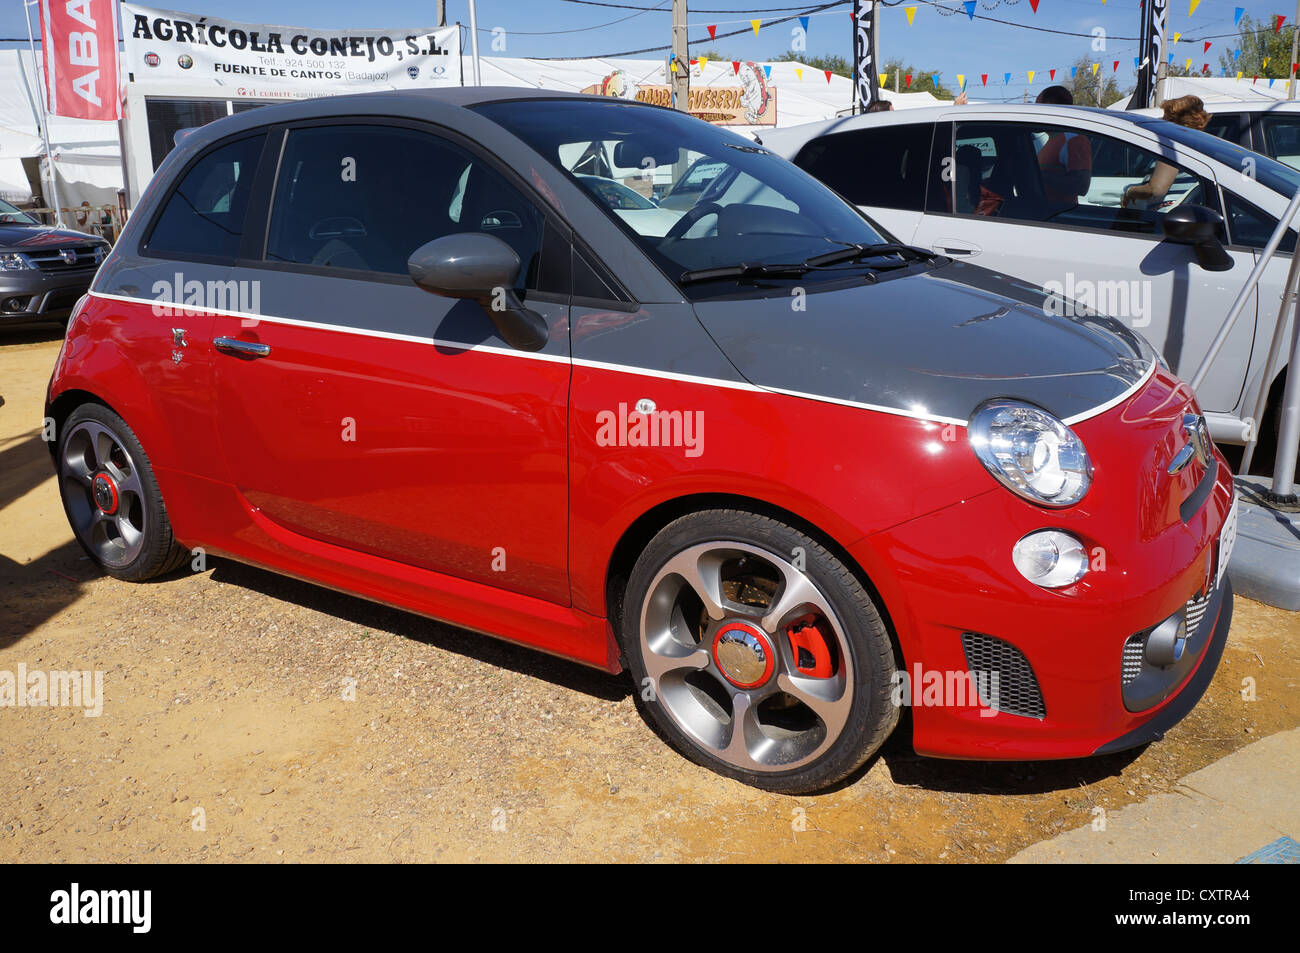 the fair International Livestock agro-industrial exhibition, view transportation car at Zafra, Badajoz, Spain Stock Photo